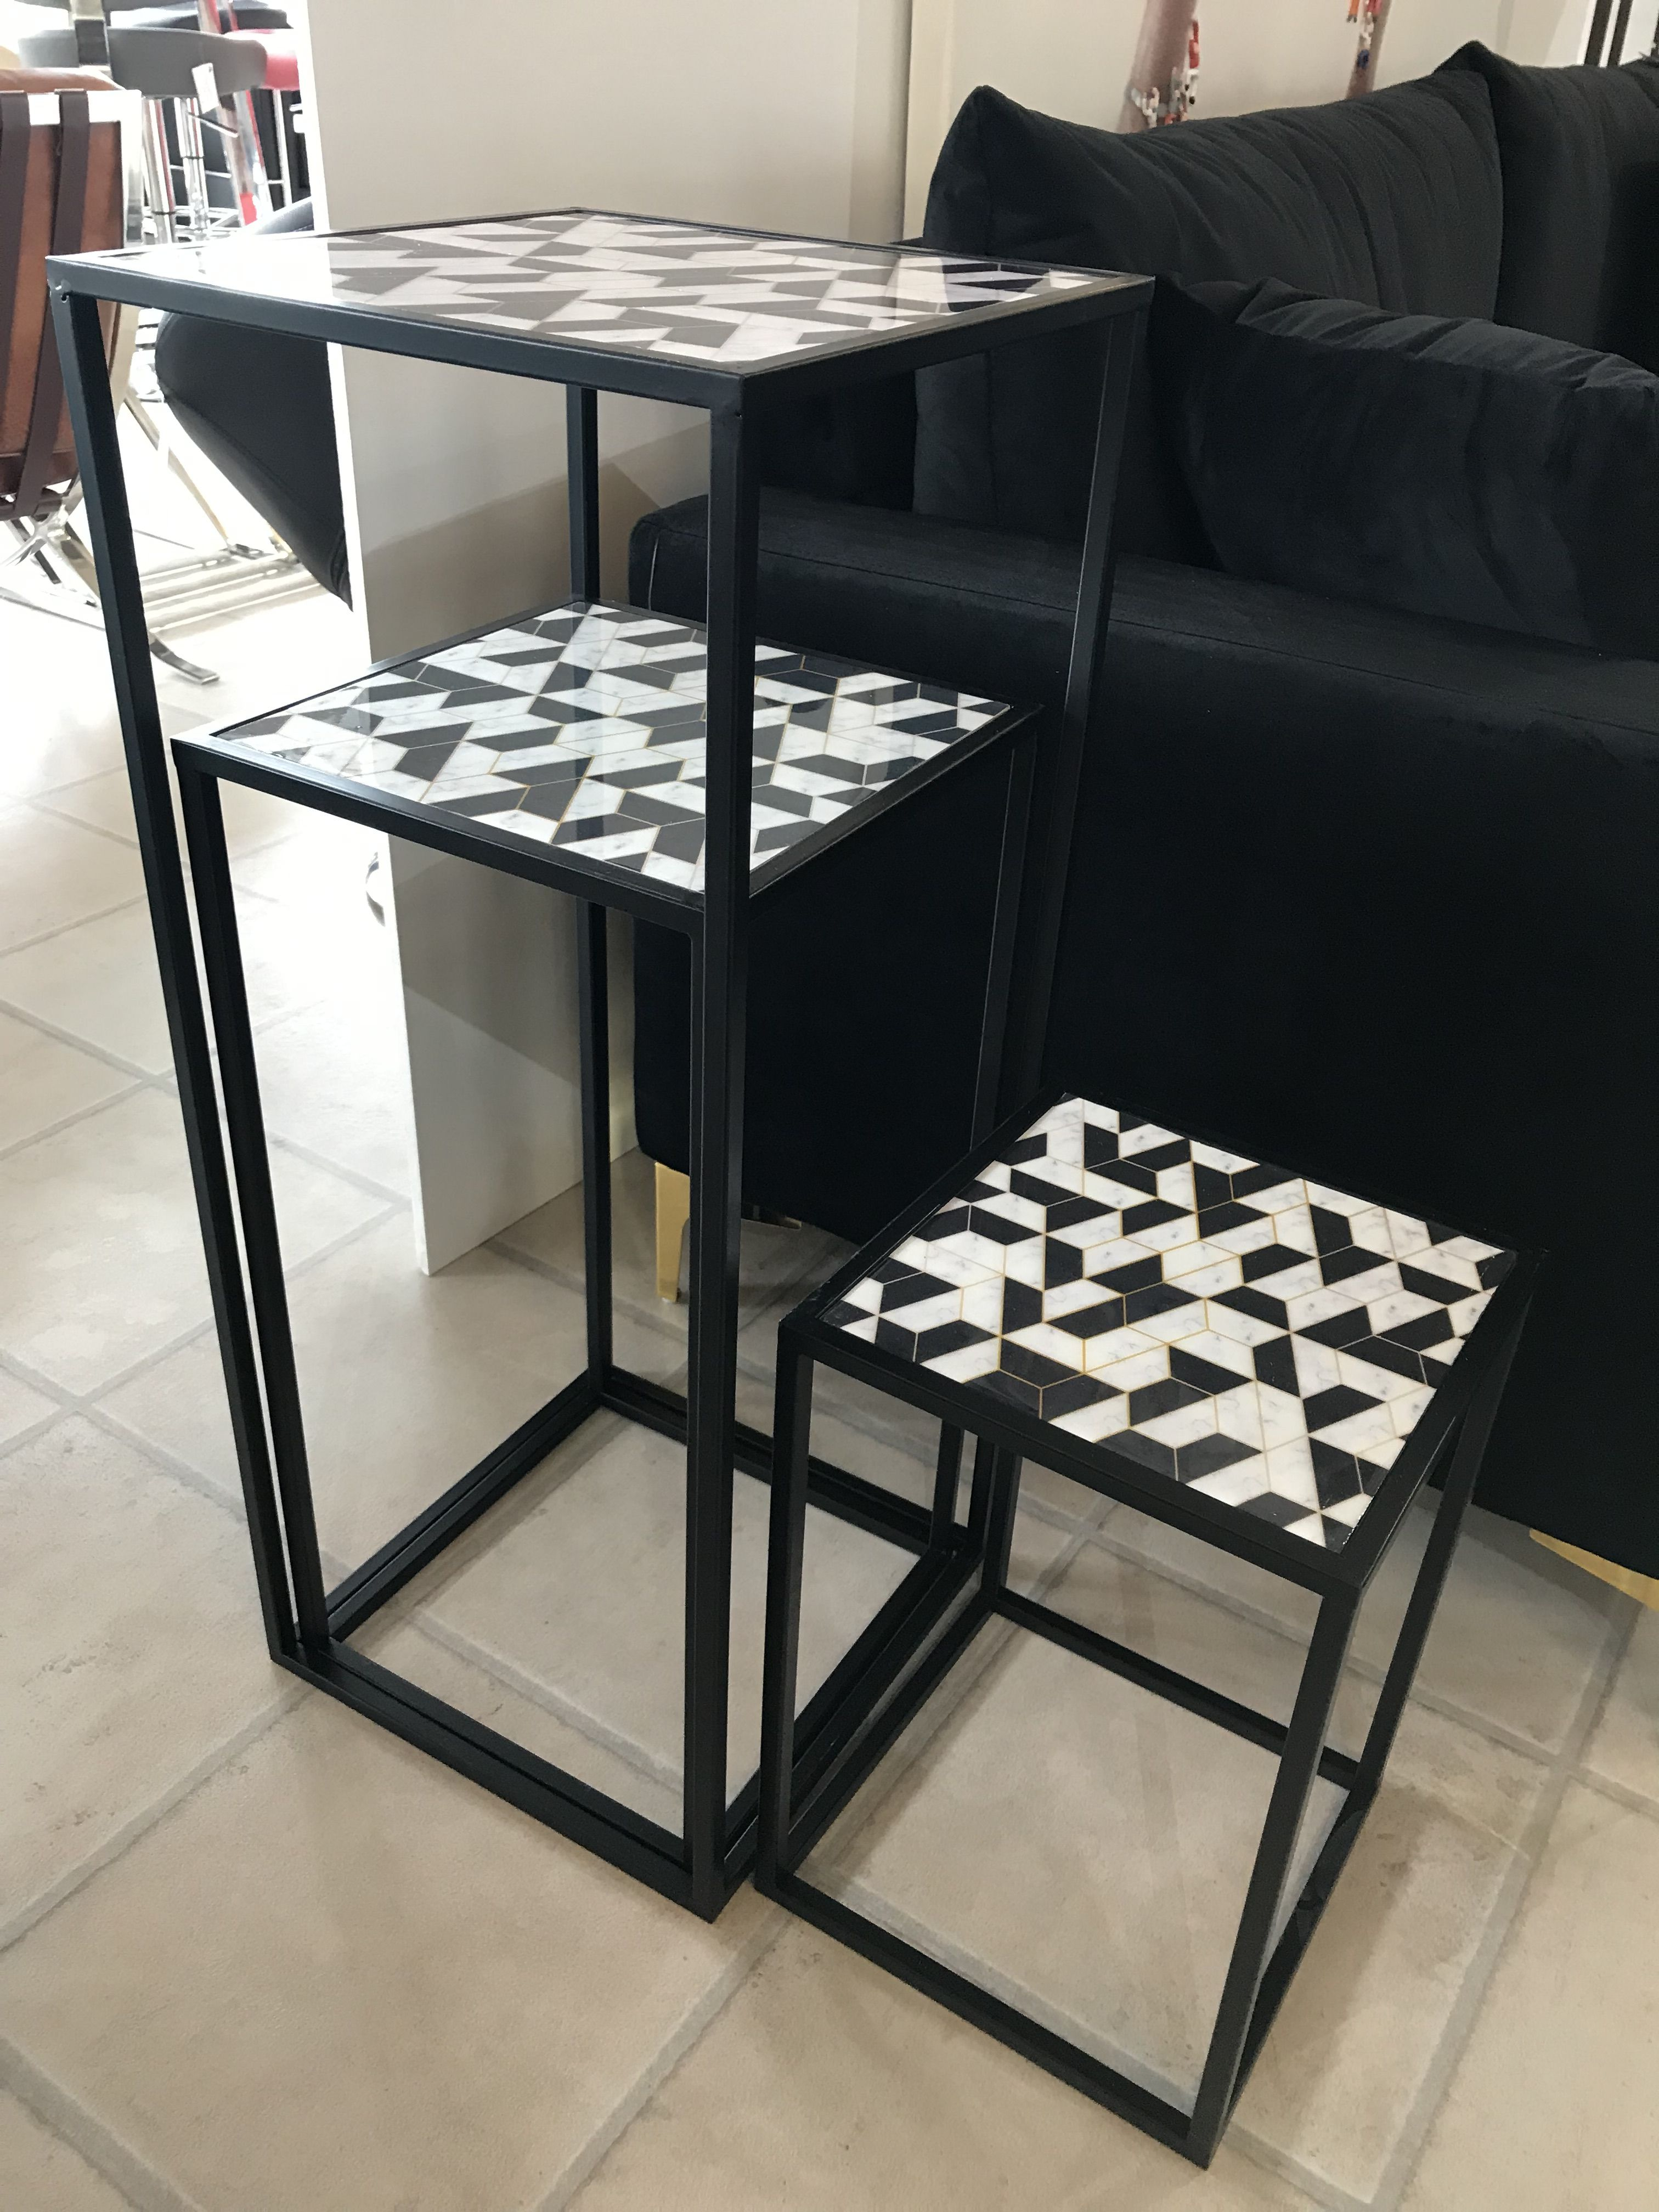 Add Something A Bit Different To Your Home With This Quirky Set Of Monochrome Geometric Designed Side Tables This Nest Wou Tall Table Modern Living Room Table